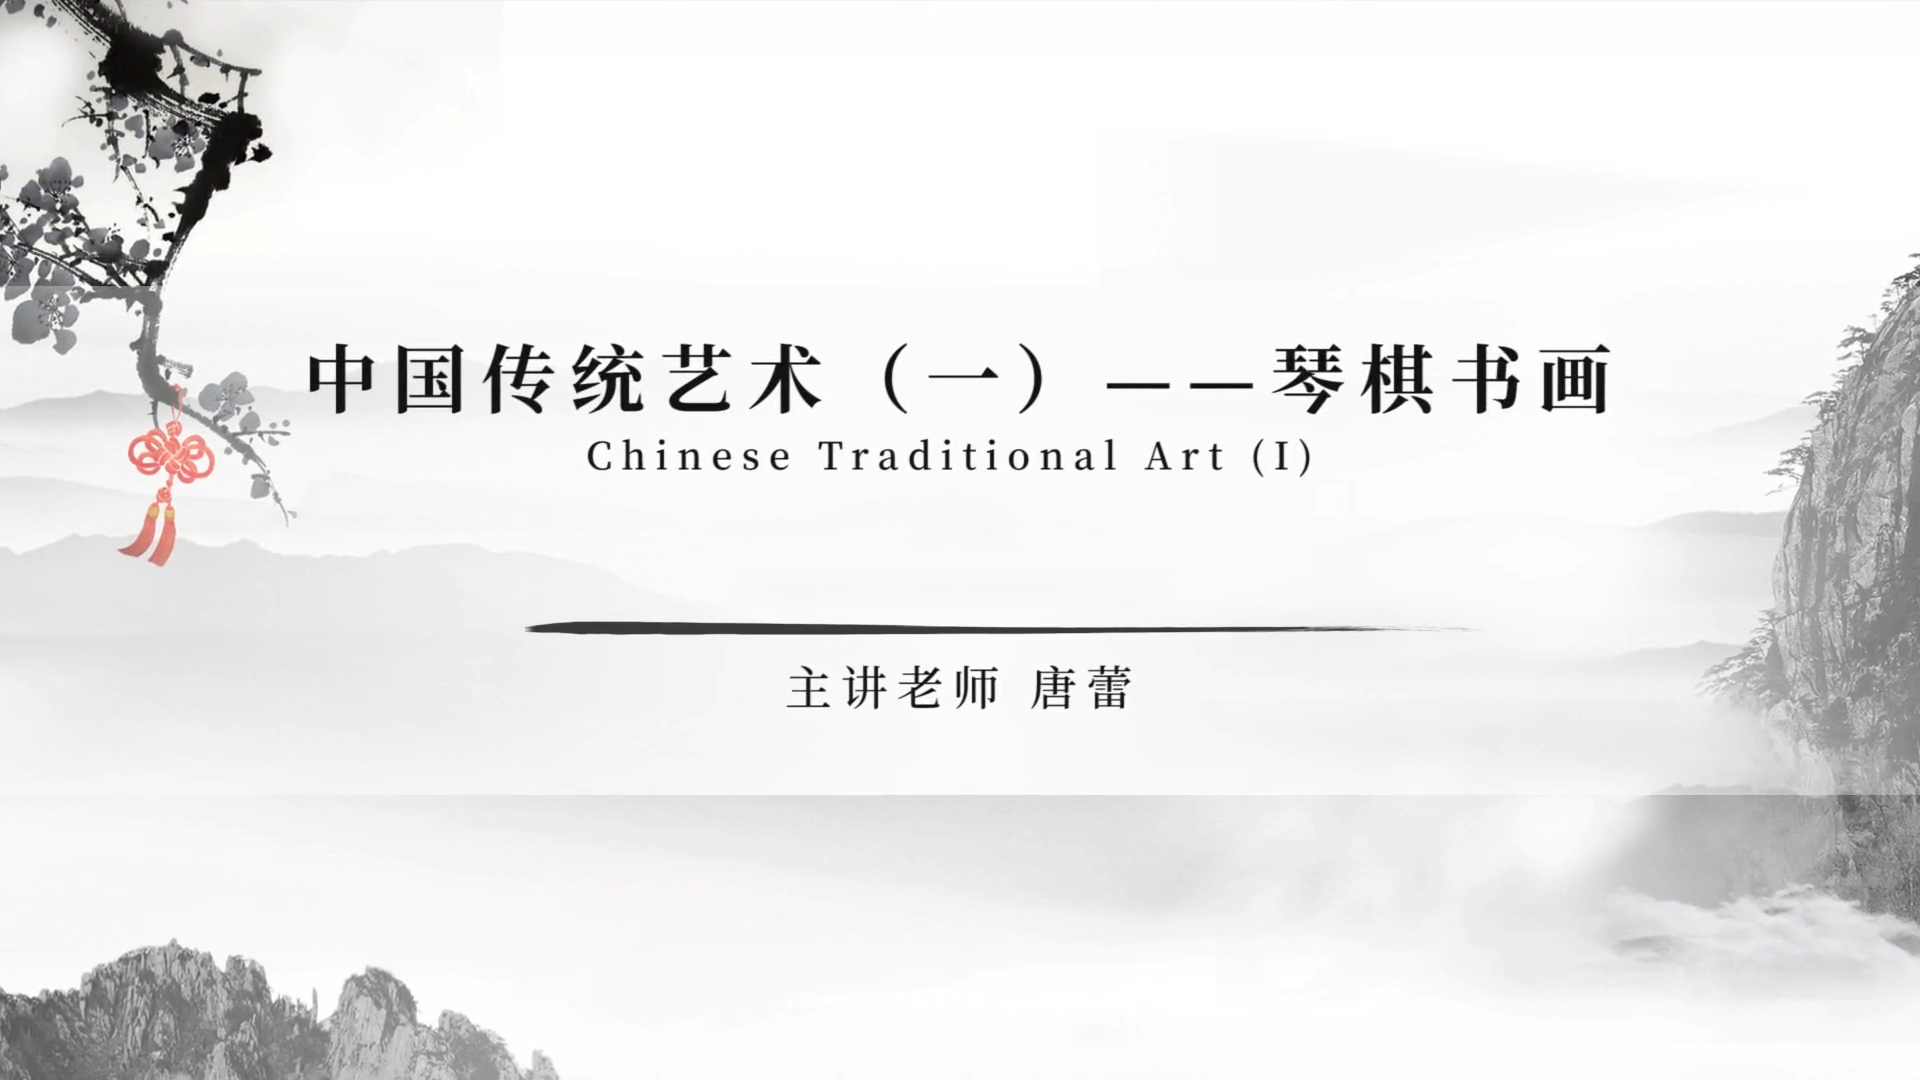 Chinese Culture Course 3: Traditional Chinese Arts